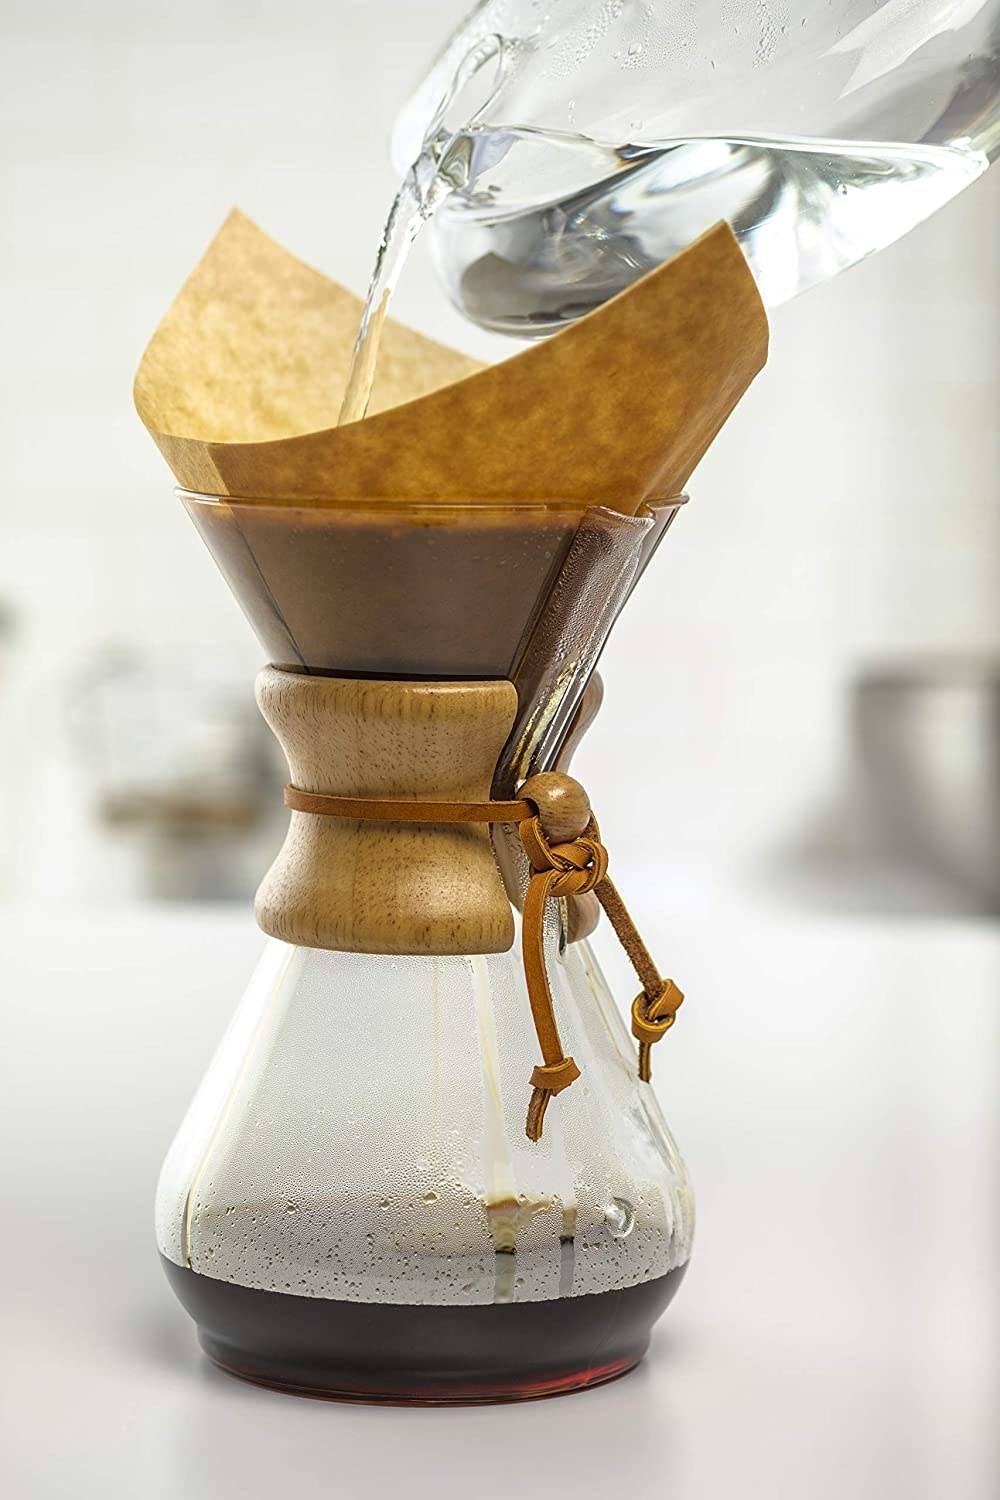 Someone pouring water in the glass coffee maker which has a wooden cuff